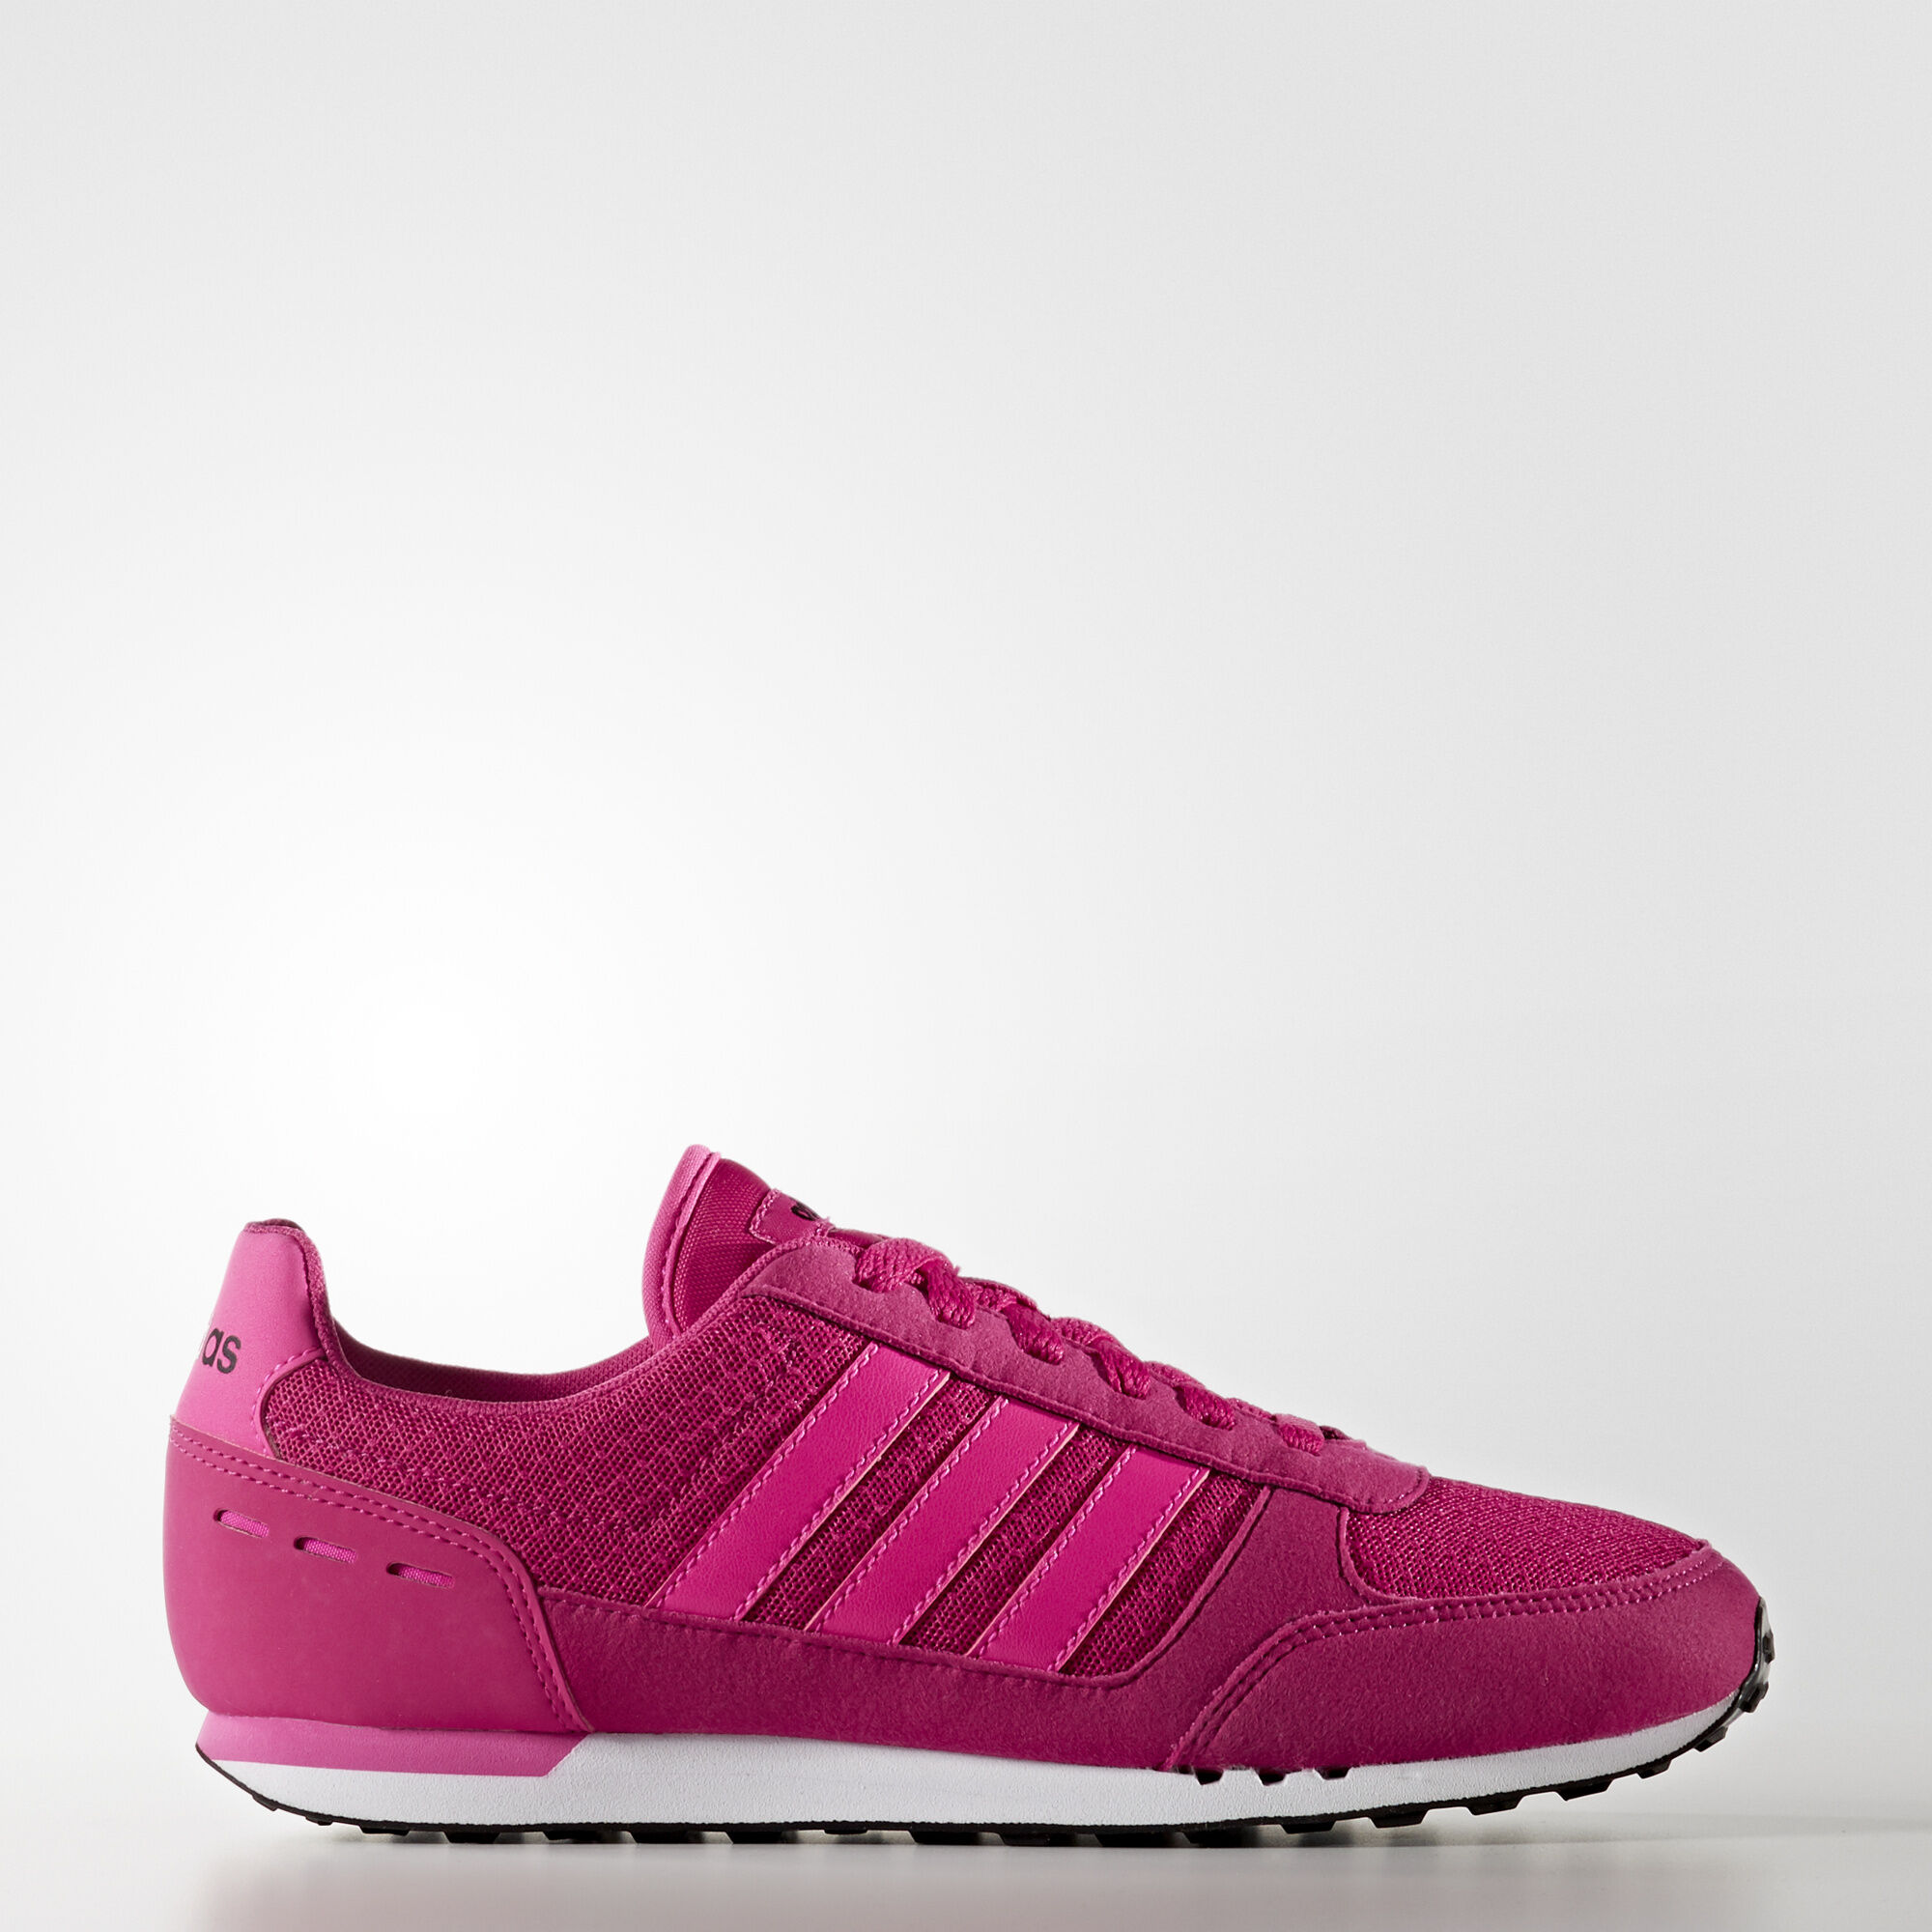 Adidas Neo Pink And Black